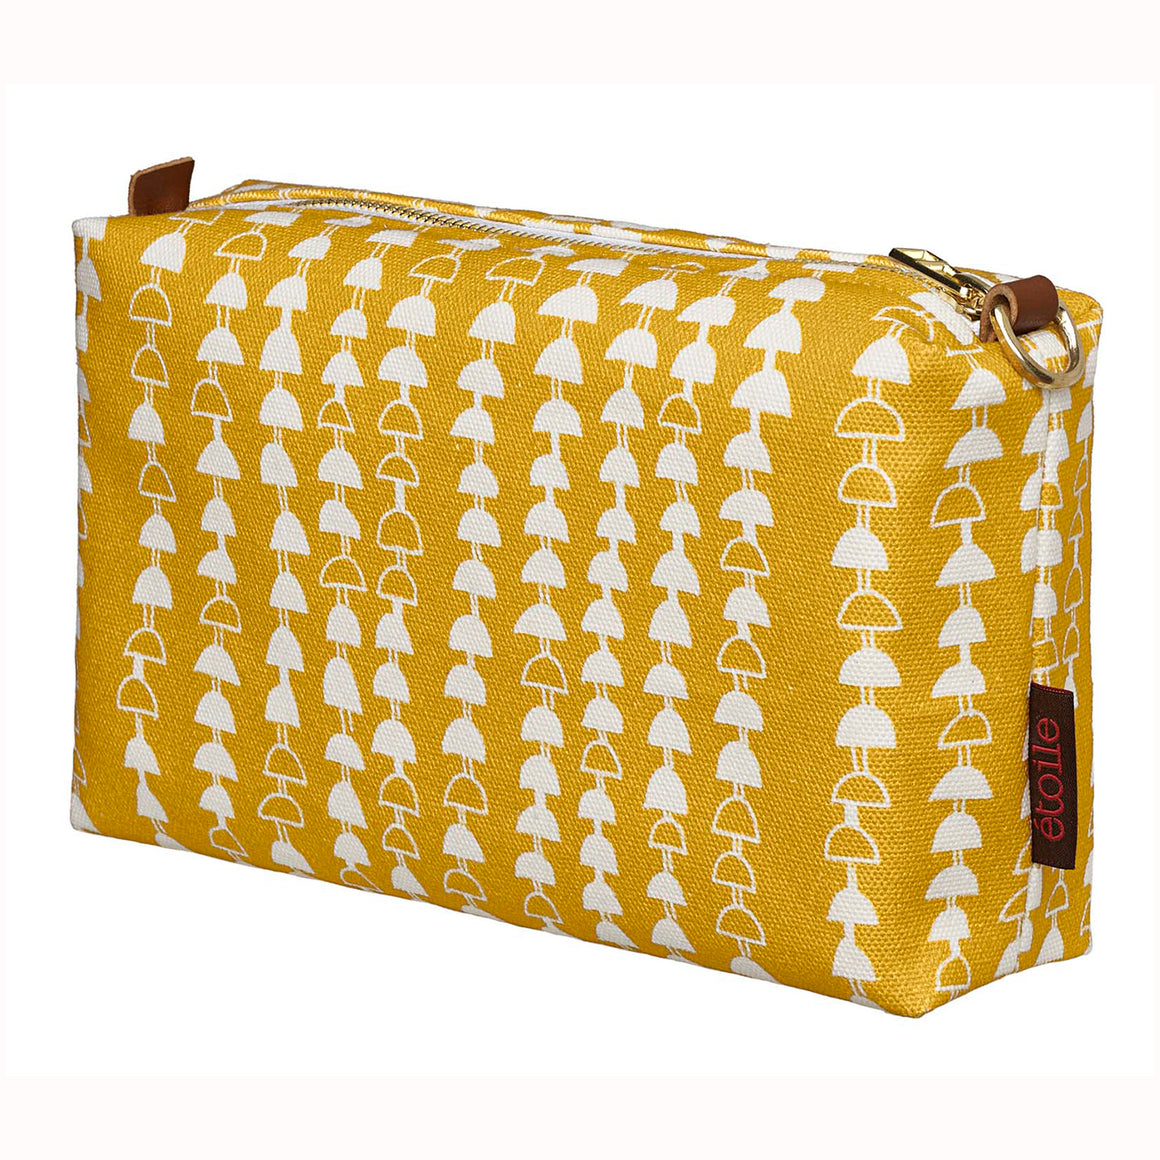 Hopi Graphic Pattern Canvas Toiletry Wash Travel Bag in Mustard Gold Perfect for cosmetics, shave and travel kit Ships from Canada